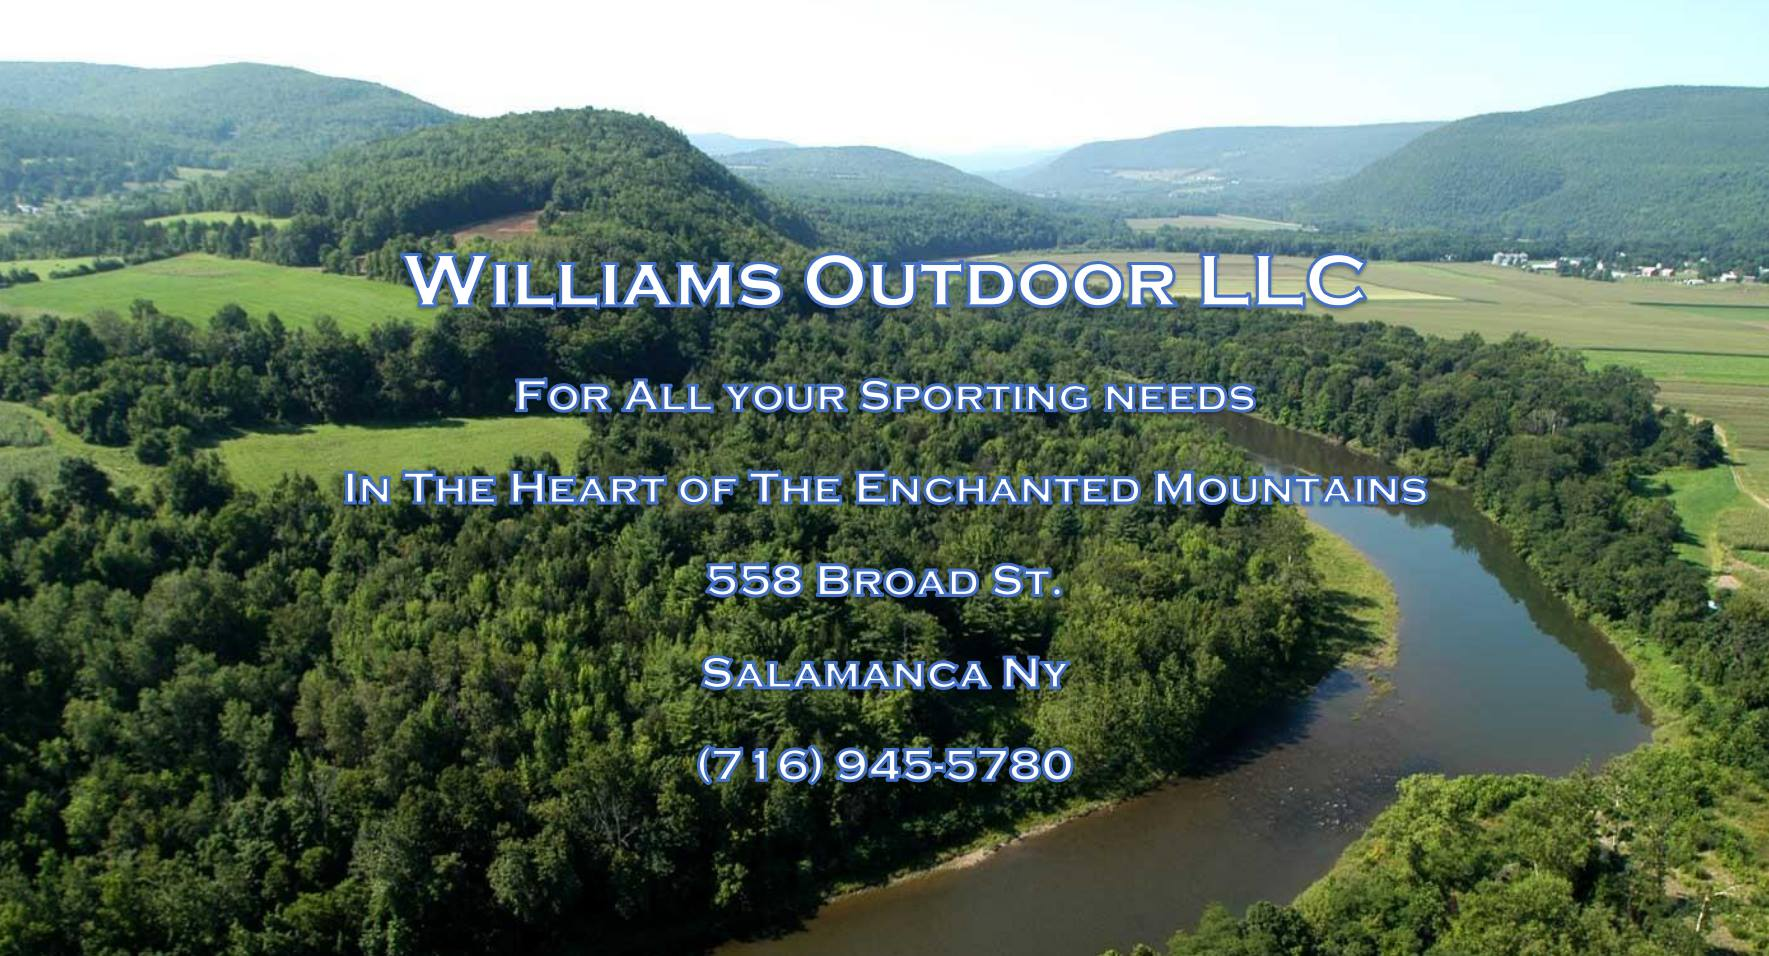 Williams outdoor llc in salamanca enchanted mountains for Nys fishing license cost